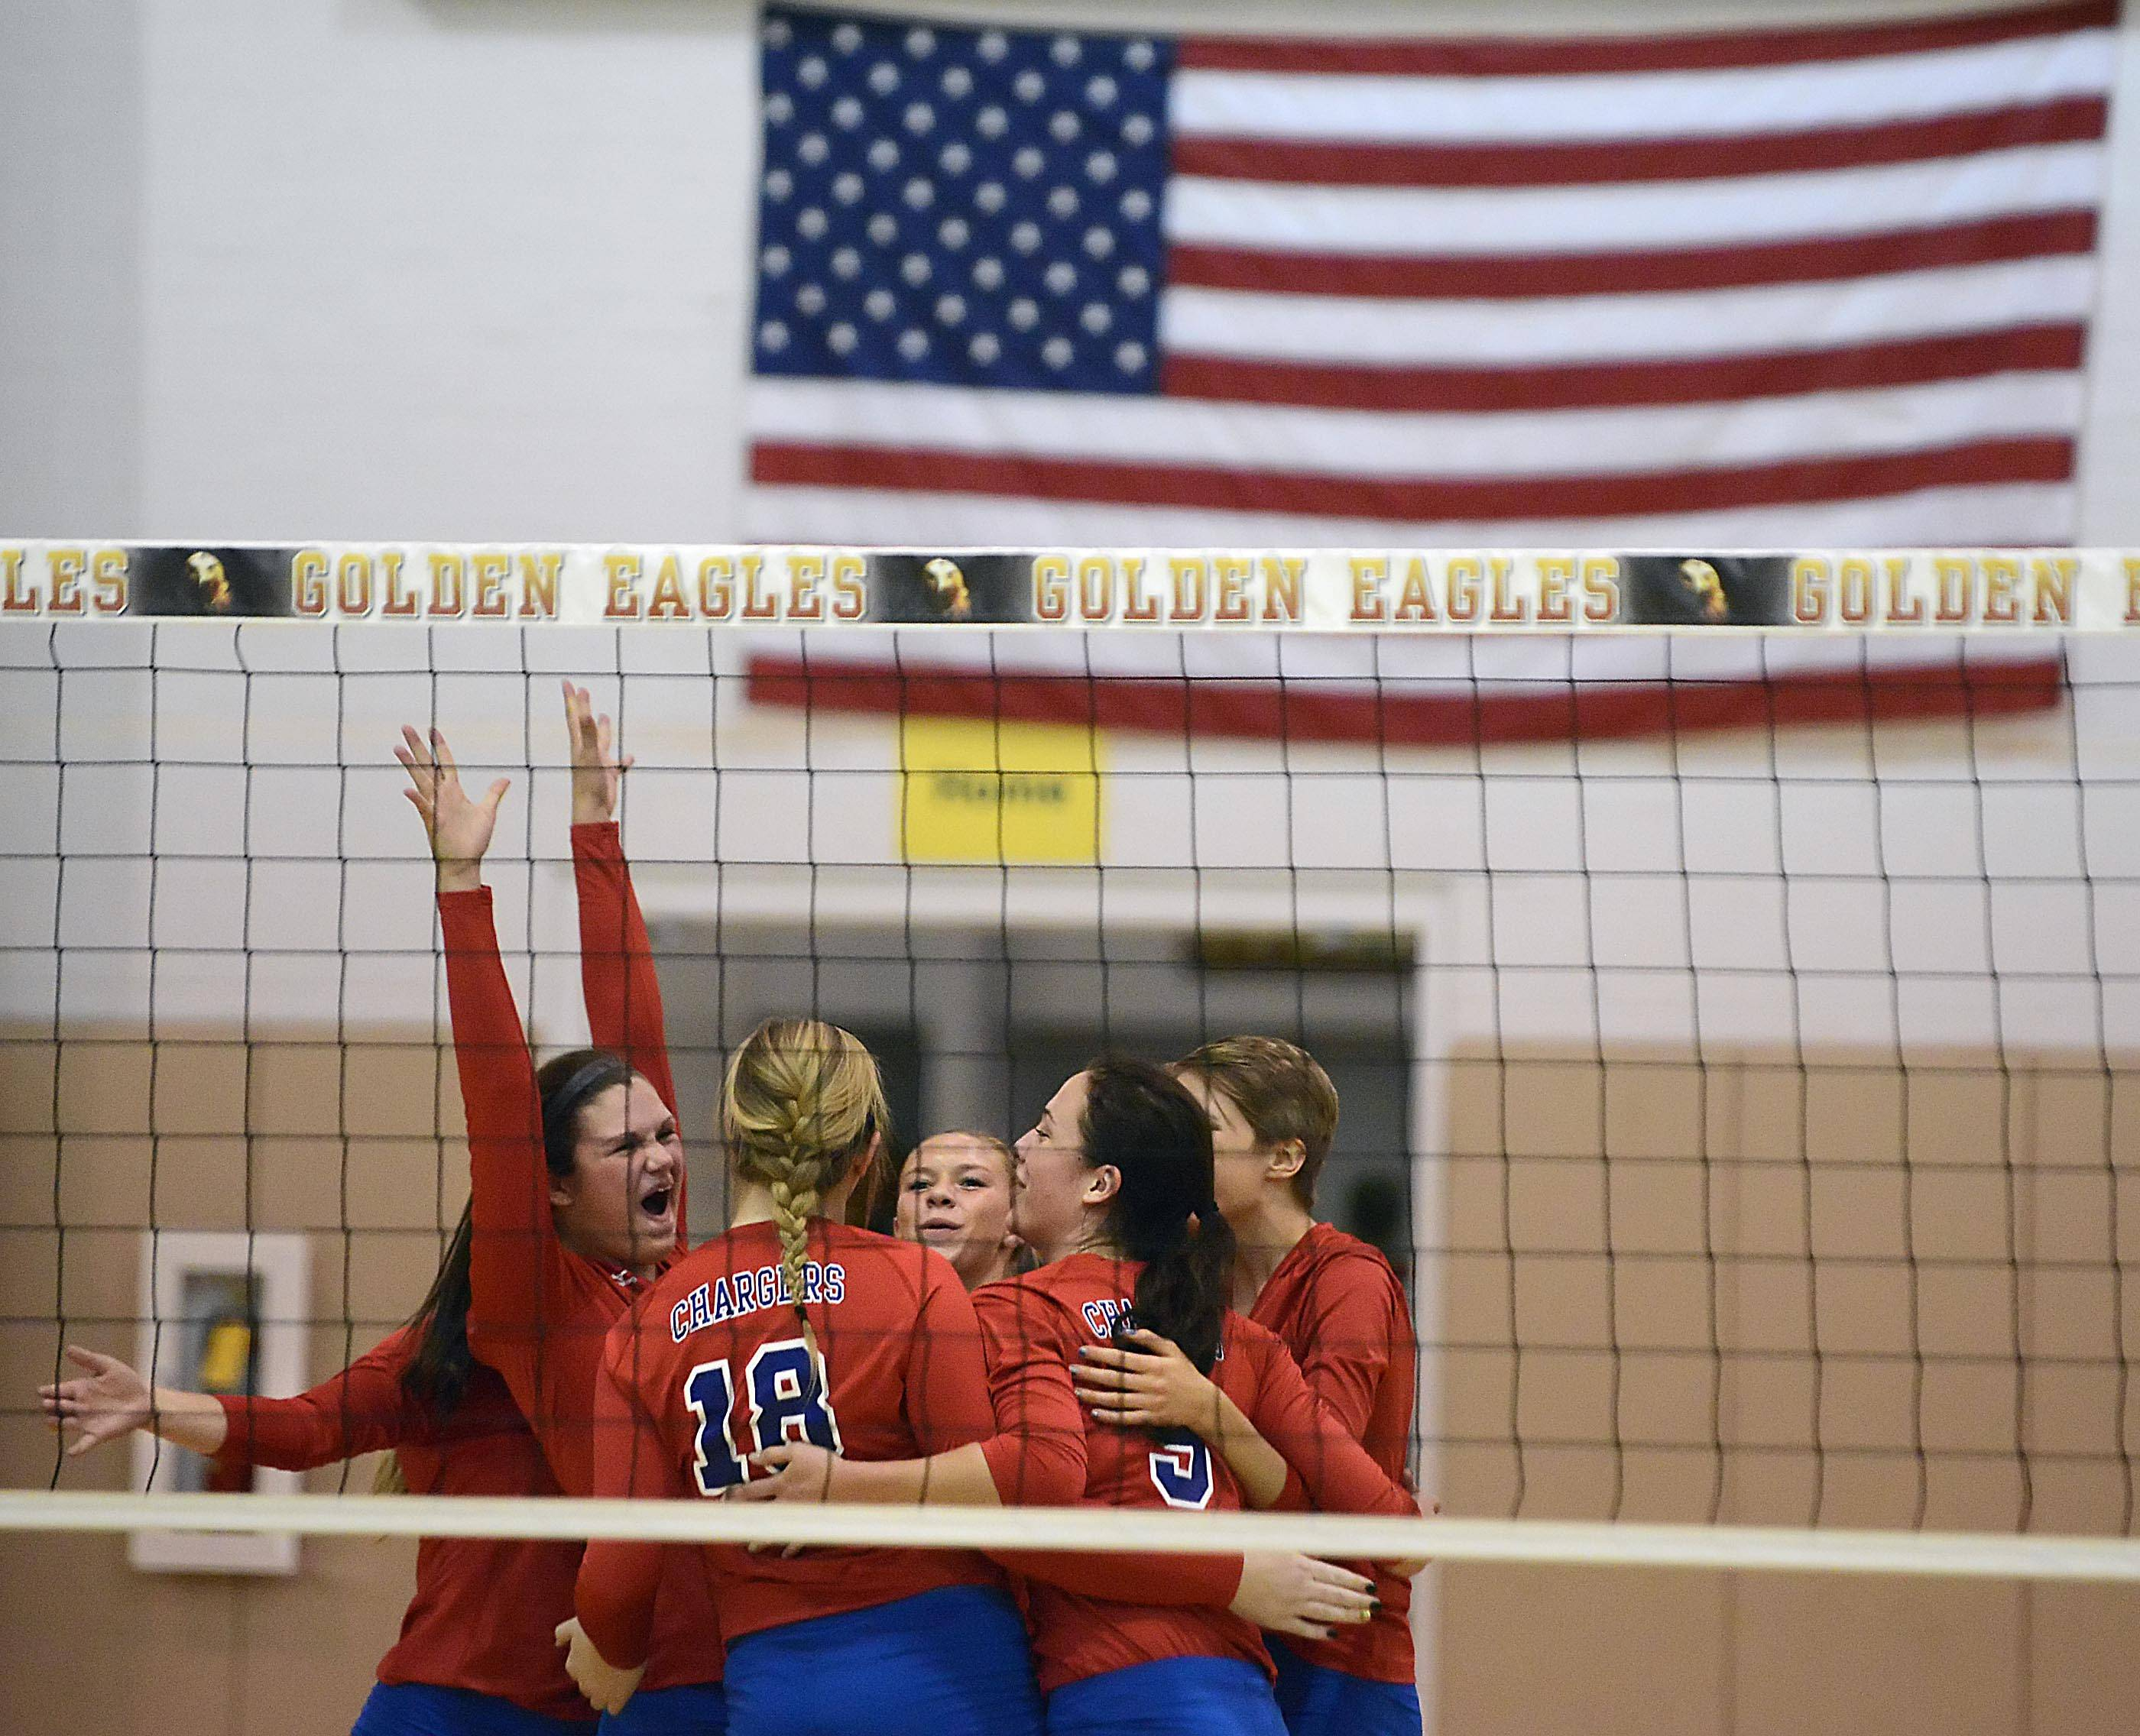 Dundee-Crown celebrates a point against Jacobs Thursday in Algonquin.